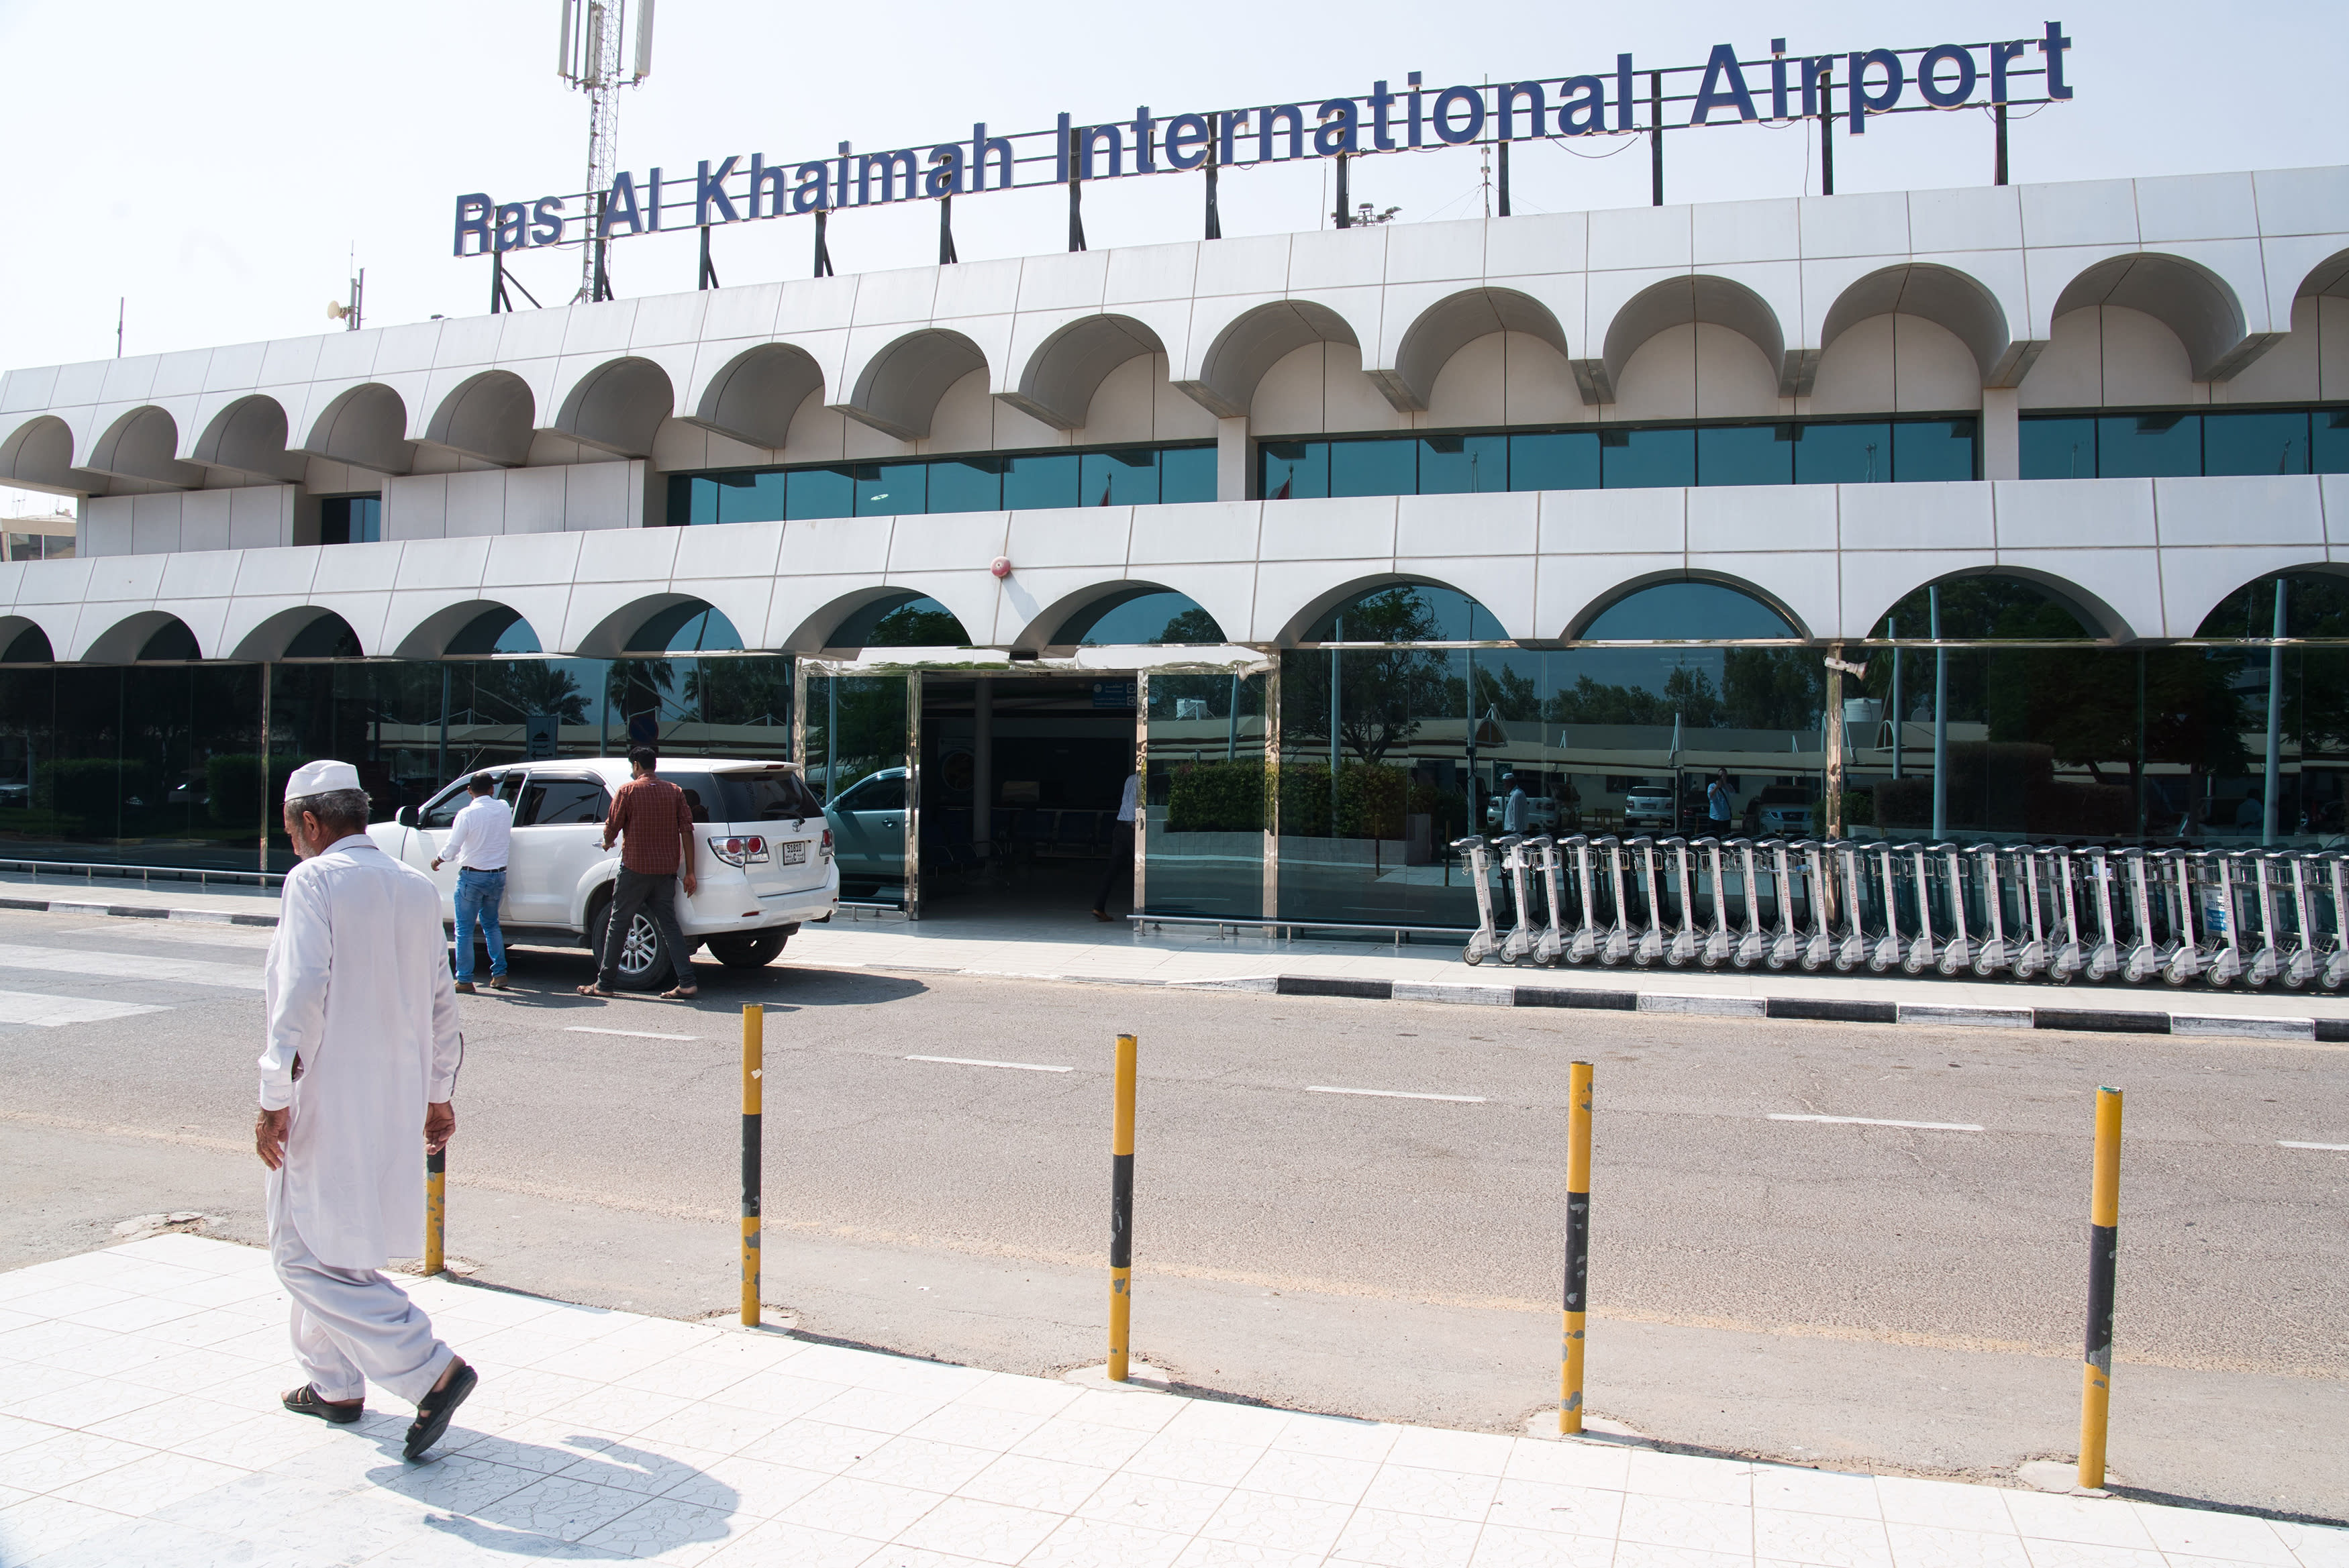 A man walks past the Ras al-Khaimah International Airport in Ras al-Khaimah, United Arab Emirates, Wednesday, Oct. 23, 2019. India's low-cost airline SpiceJet announced plans Wednesday to build its first international hub in the United Arab Emirates, offering a pledge of support to Boeing Co. by saying it would use now-grounded 737 MAX aircraft in the operation once regulators approve the planes for flight. (AP Photo/Jon Gambrell)